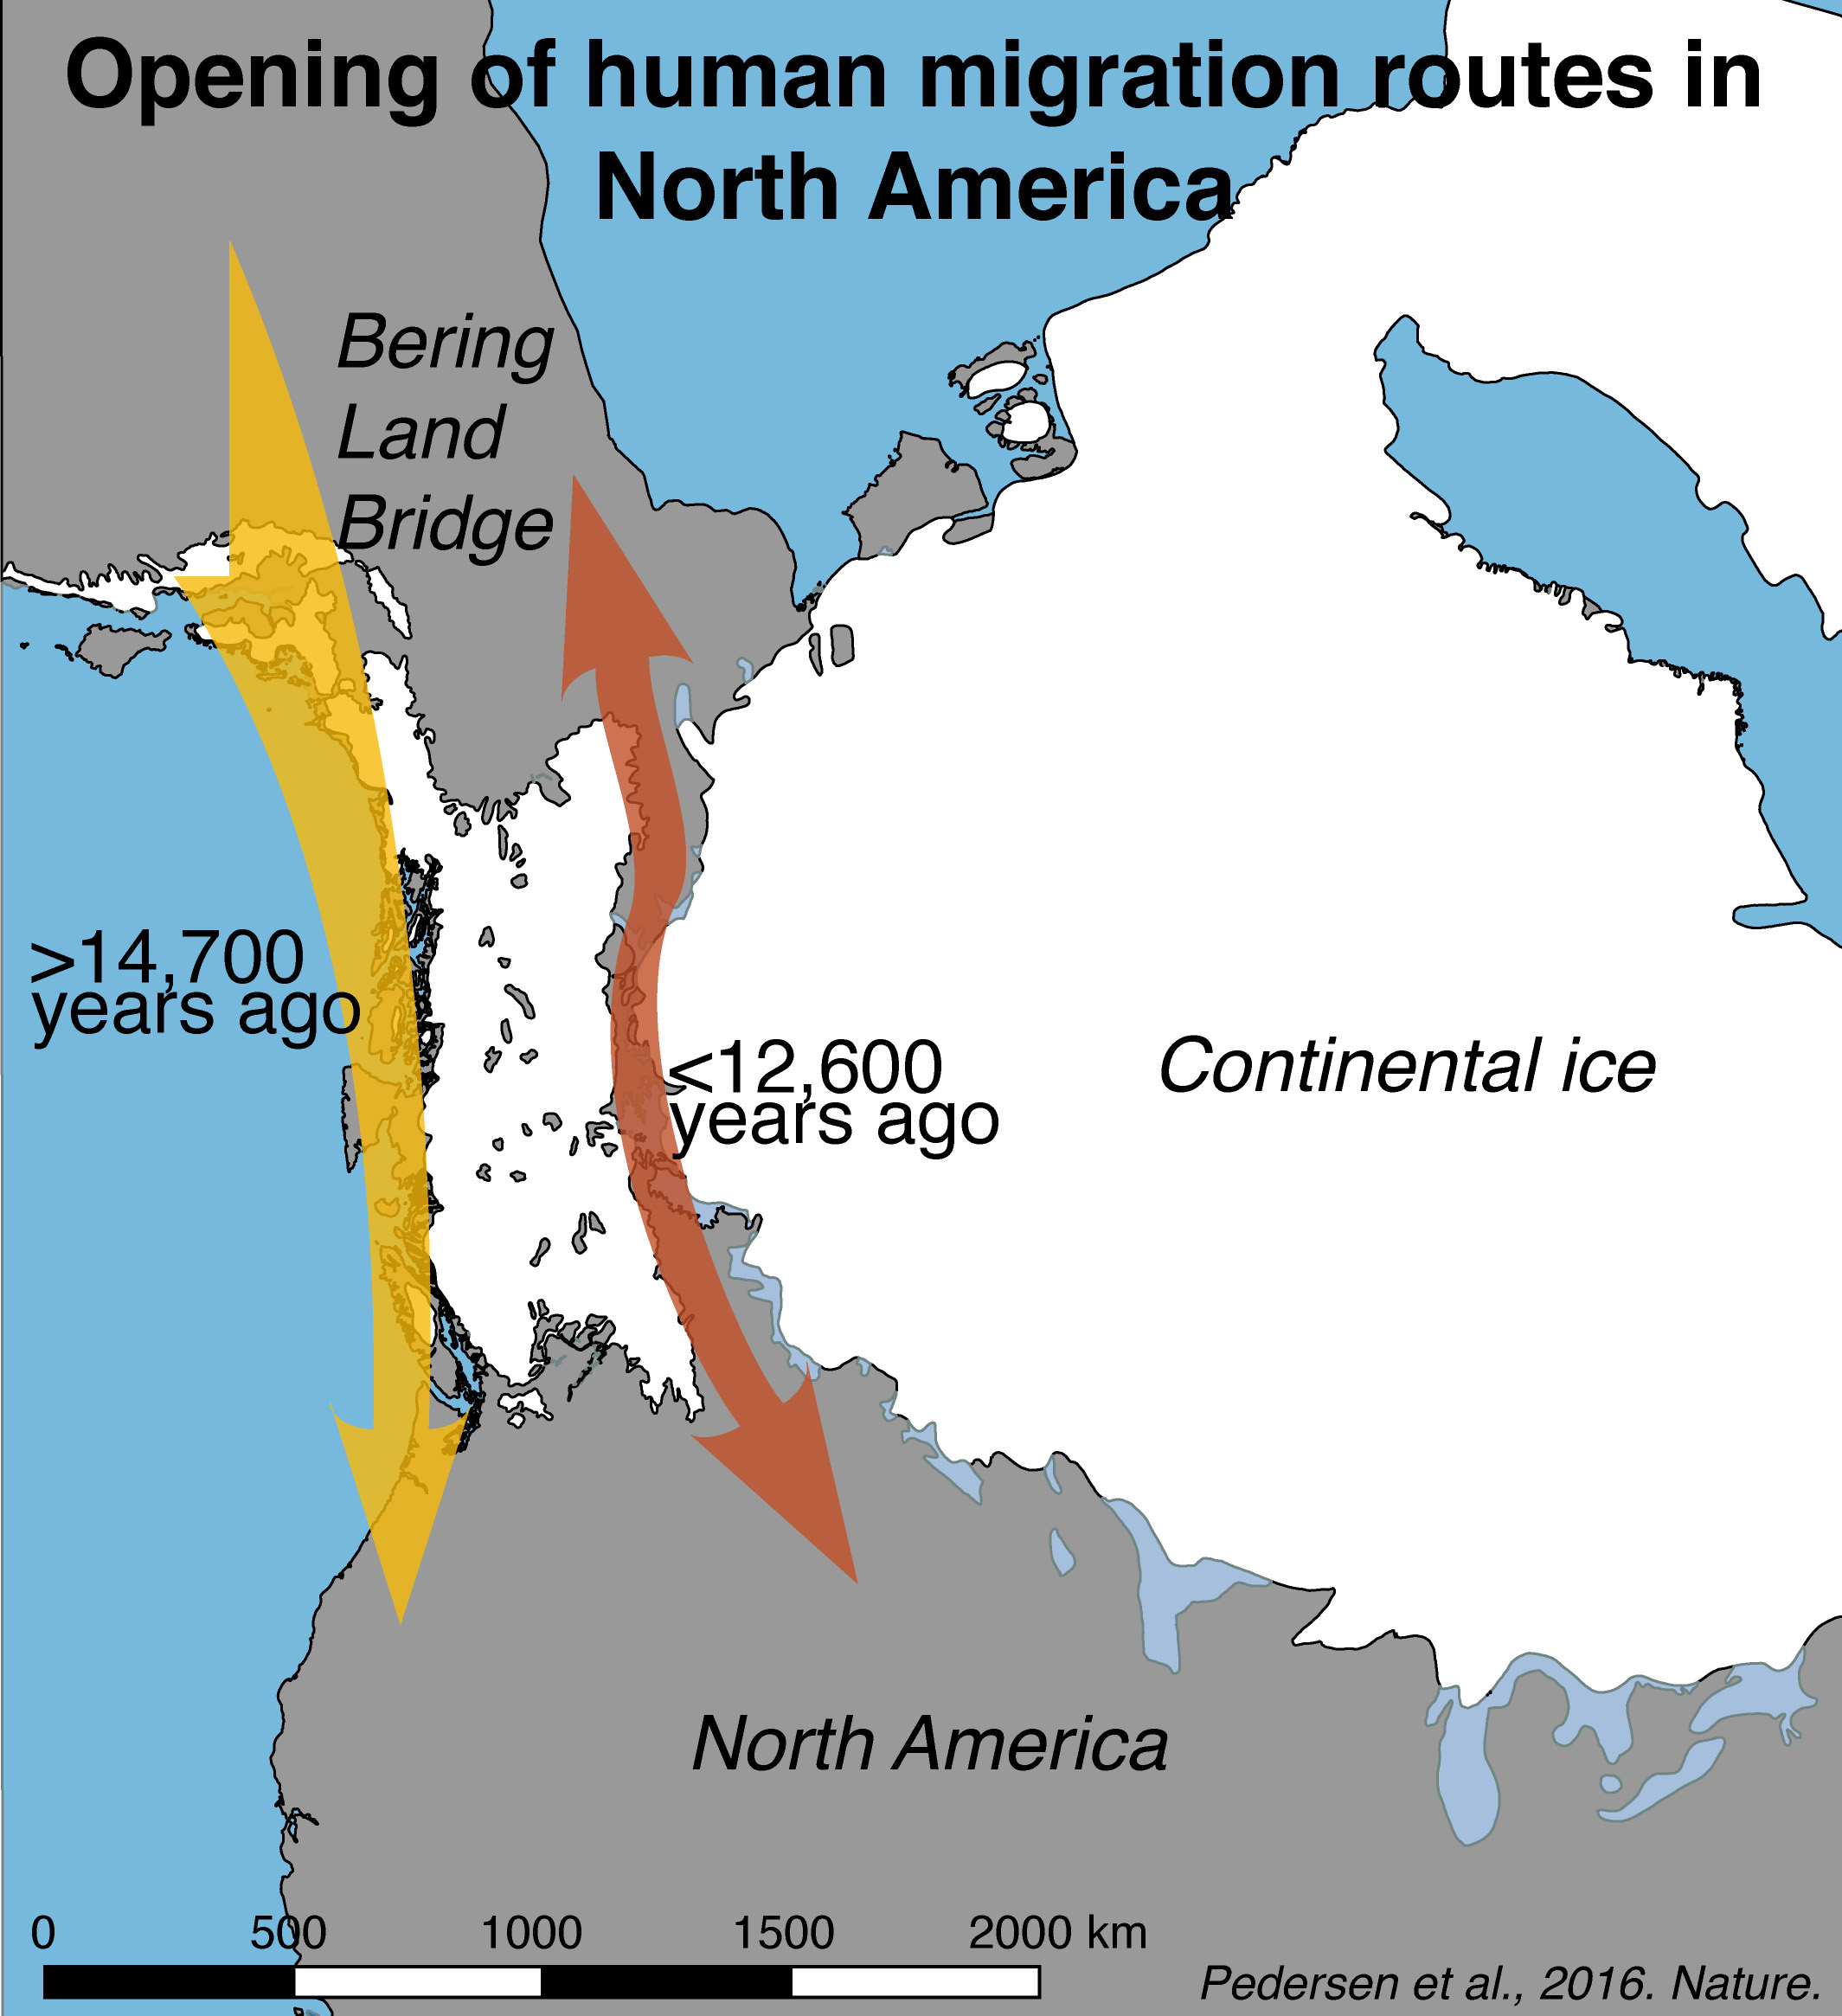 Ice Age North America Map on younger dryas, prehistoric map of north america, late glacial maximum, ancient seas of north america, pleistocene ice age north america, glacial map of north america, snowball earth, little ice age, bering land bridge, cordilleran ice sheet, retreat of glaciers since 1850, glaciers covering north america, milankovitch cycles, laurentide ice sheet, ice coverage of north america, glaciers that swept over north america, ice age north america climate, post-glacial rebound, sea level rise map north america, quaternary glaciation, land bridge from asia to north america, ancient sea level map america, land bridge migration to north america, ice age glaciers north america, upper paleolithic, glacial period, last glacial period, glacier coverage north america, little ice age north america, ice sheet, migration route from europe to america, glaciers in north america, wisconsin glaciation, early migration to north america, ice age animals north america, ice age deer north america, medieval warm period,